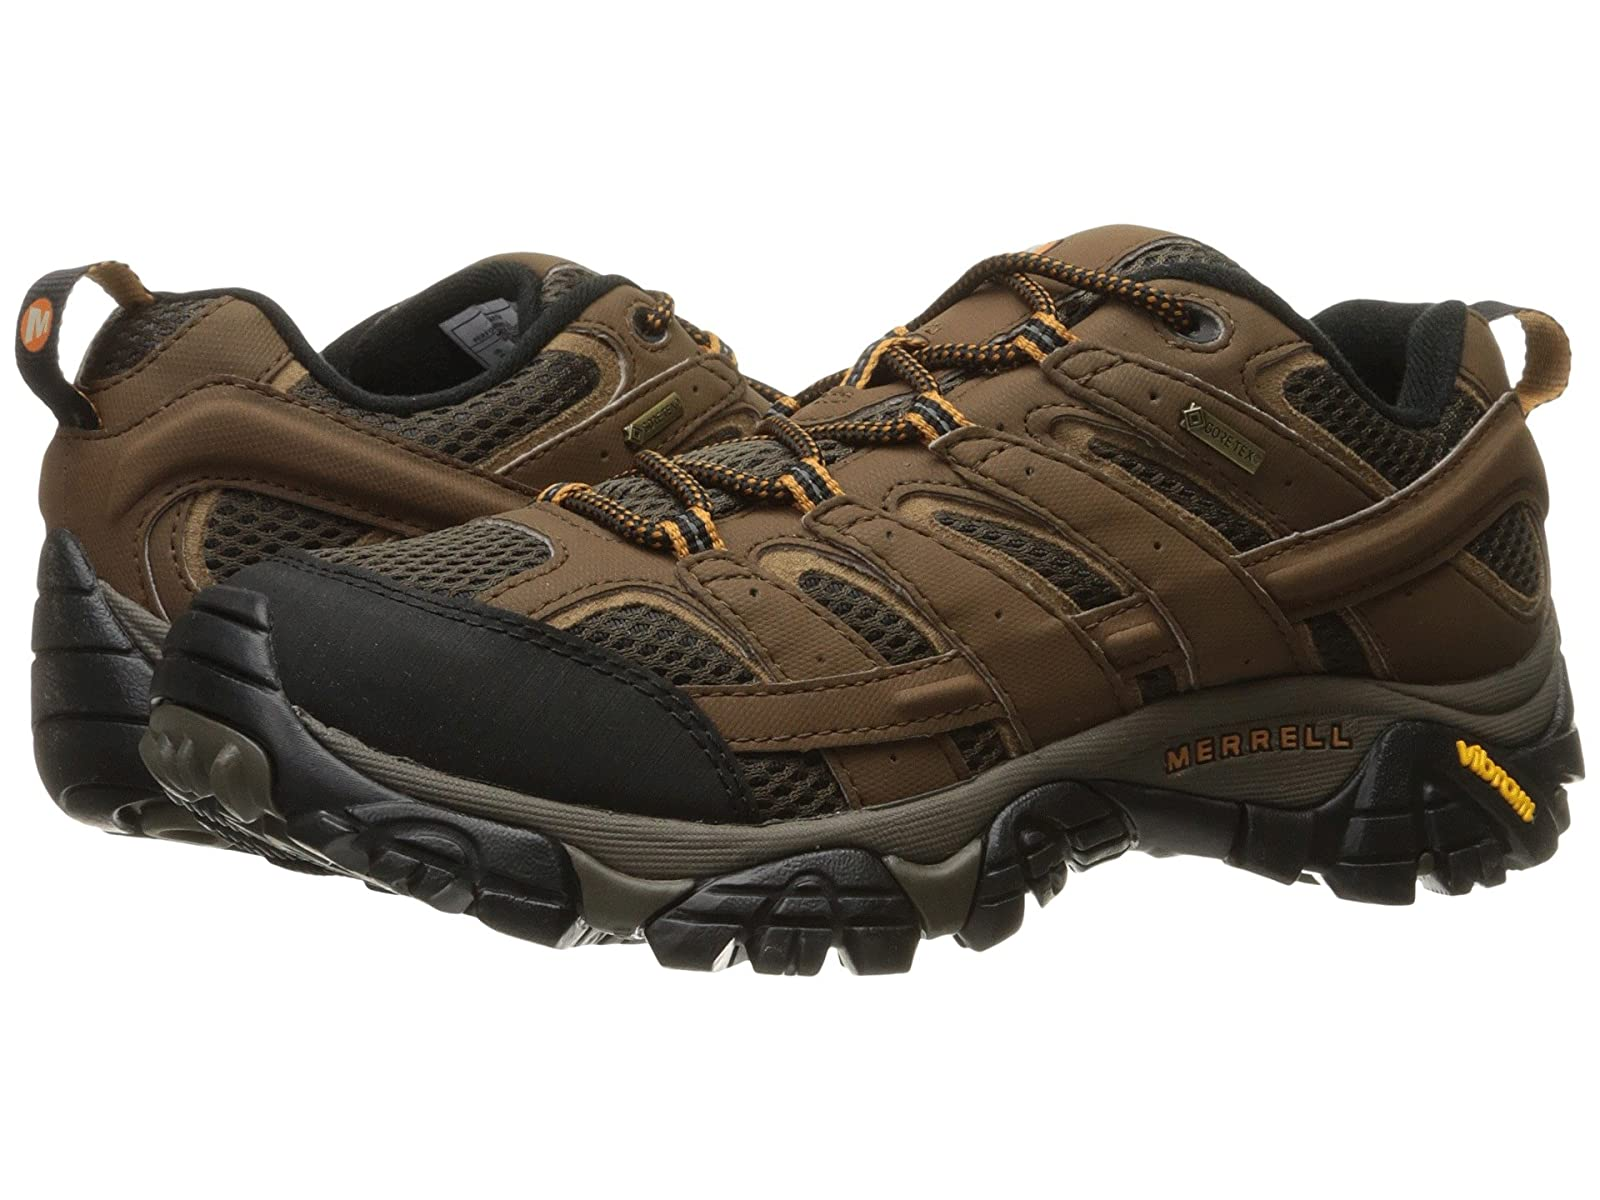 Merrell Moab 2 GTXAtmospheric grades have affordable shoes